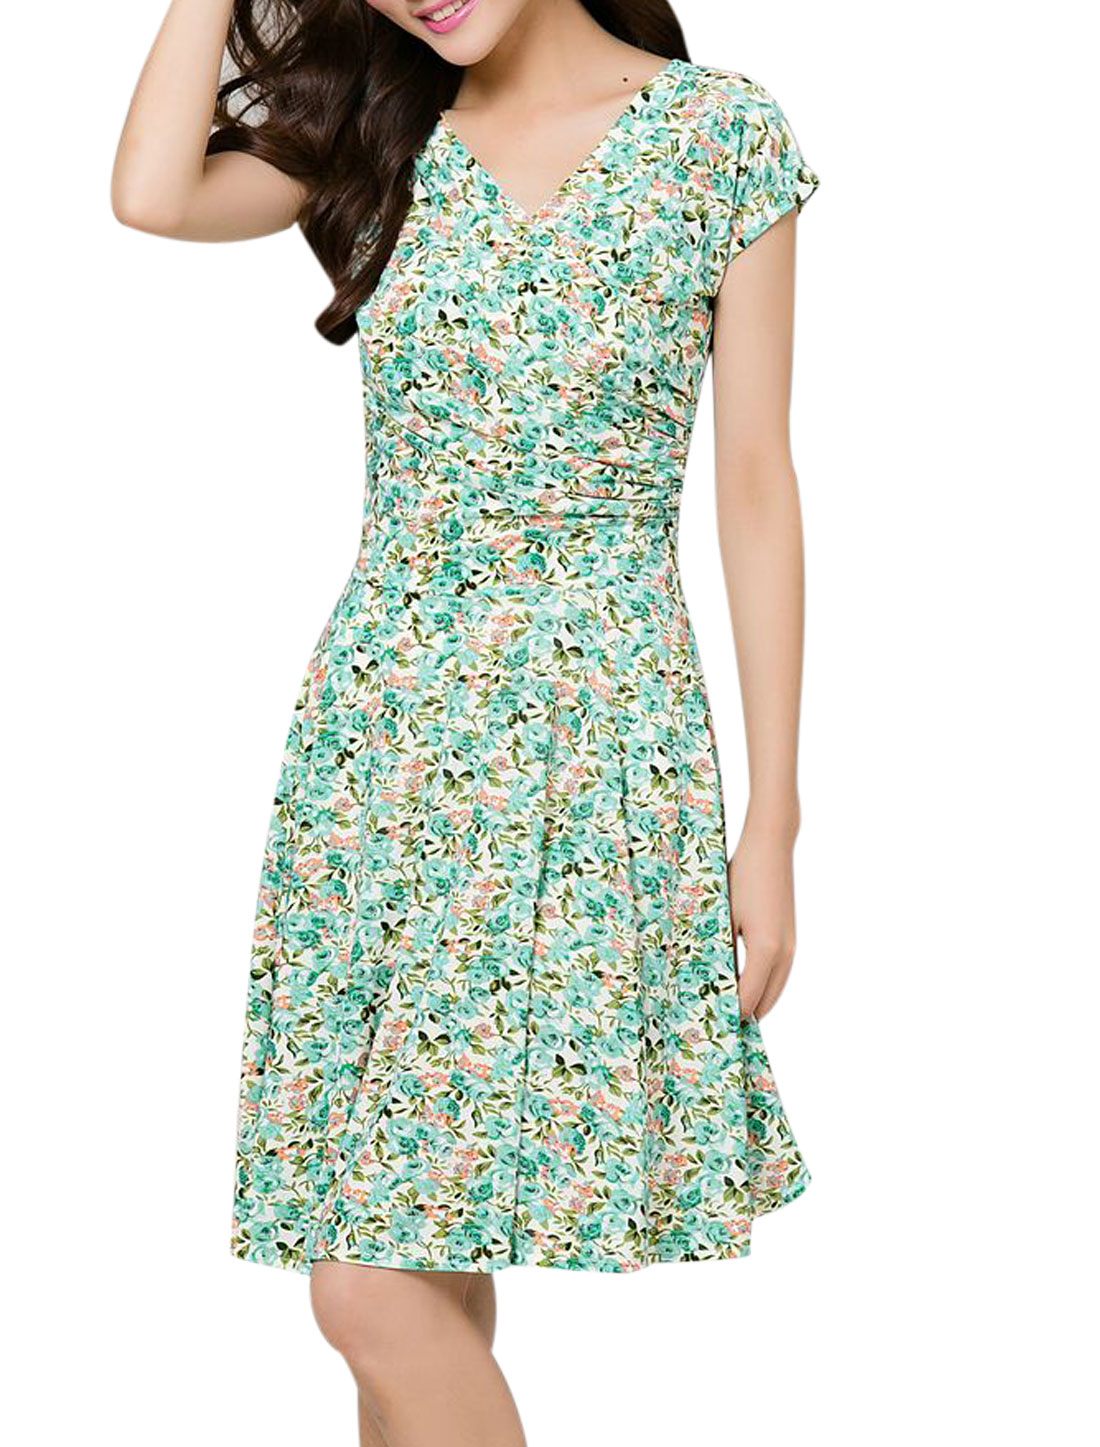 Lady Crossover V Neck Floral Prints Ruched Design Casual Dress Mint M